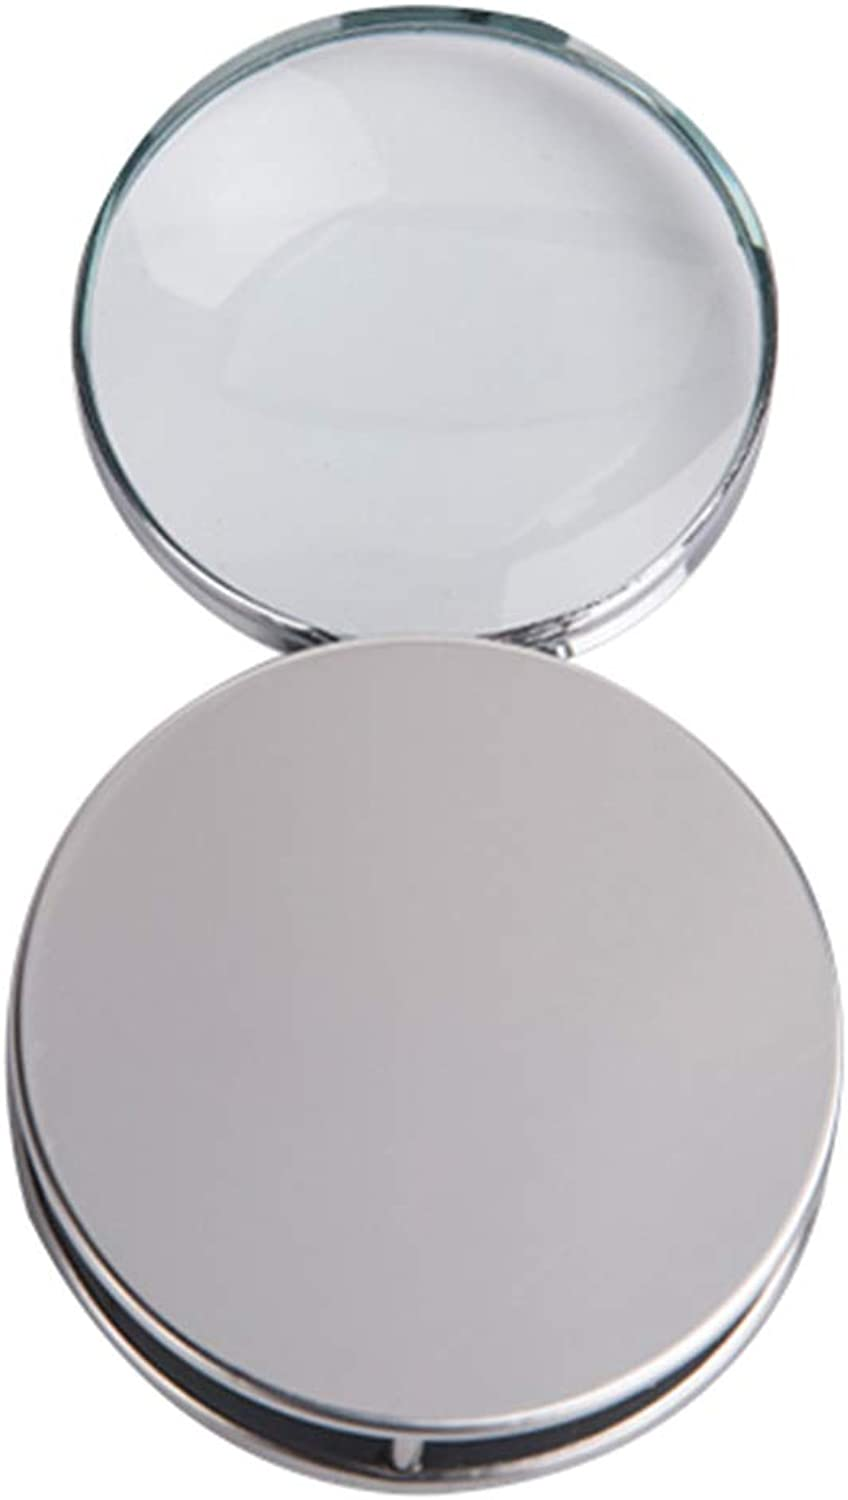 Magnifying Glass - Reading Jewelry Identification Magnifying Glass - Folding - Portable - Metal Case Optical Lens